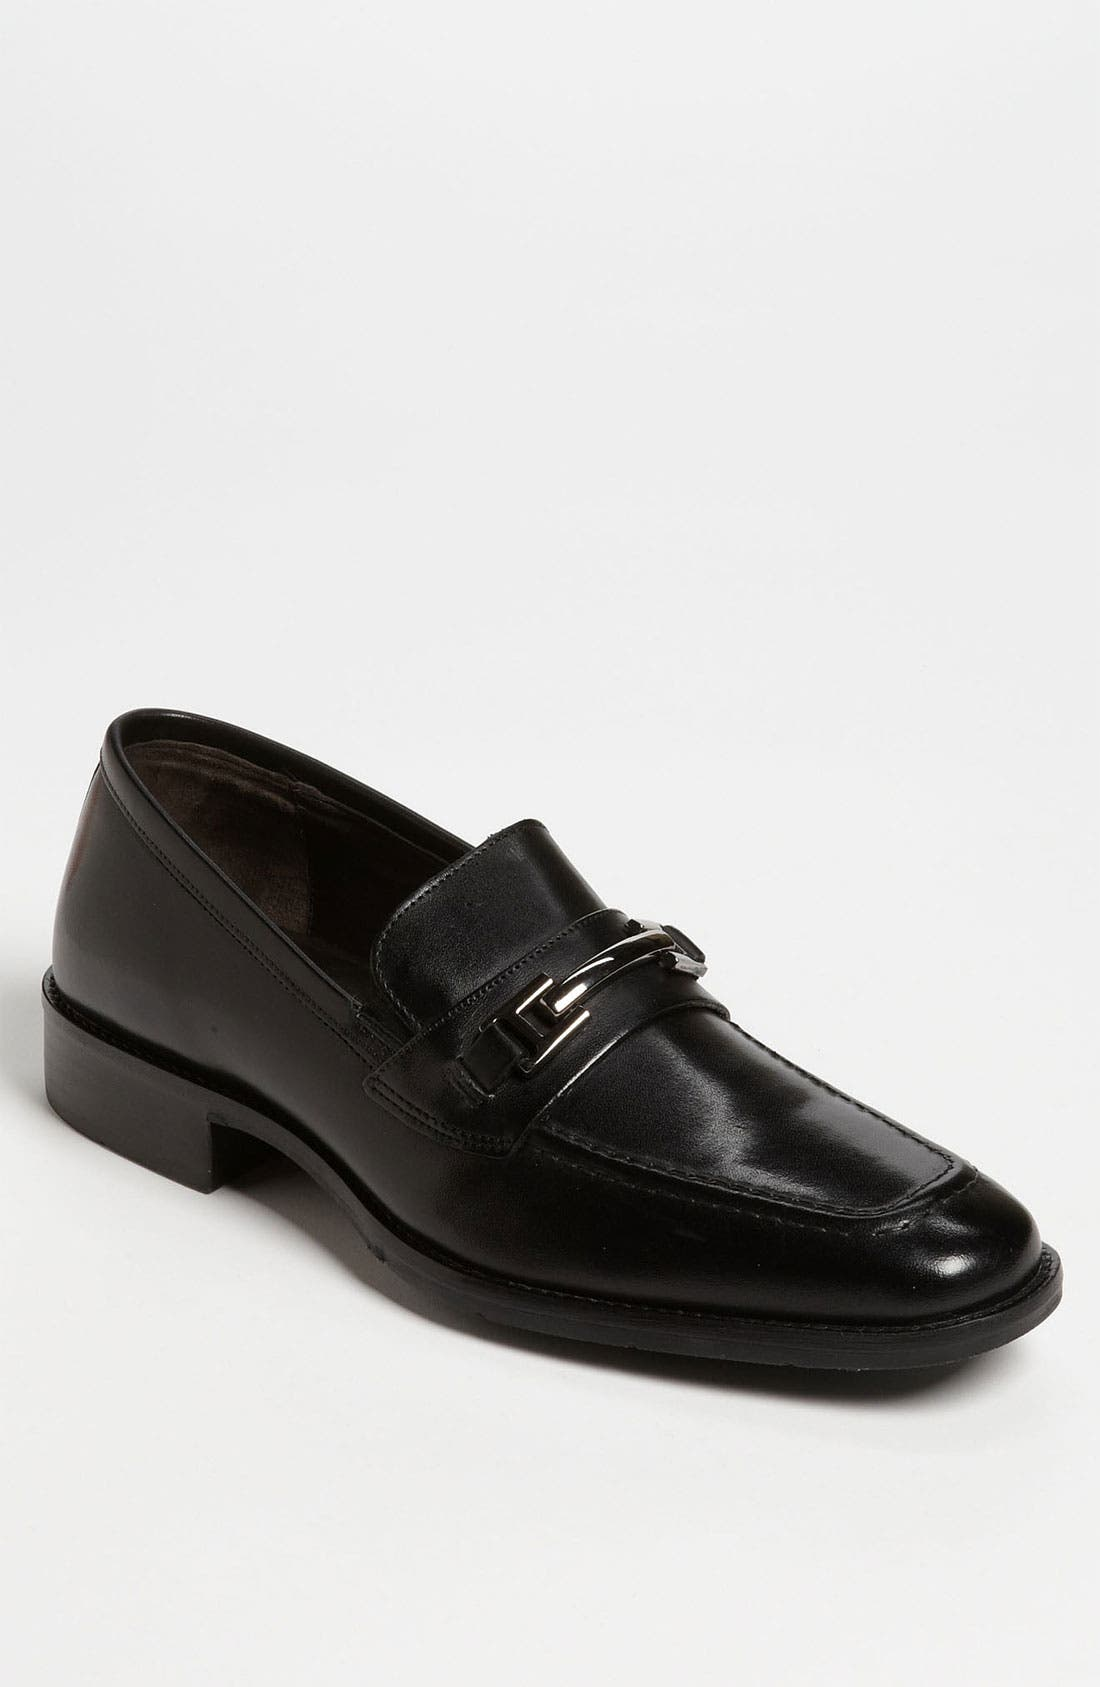 Alternate Image 1 Selected - Johnston & Murphy 'Larsey' Bit Loafer (Online Only)